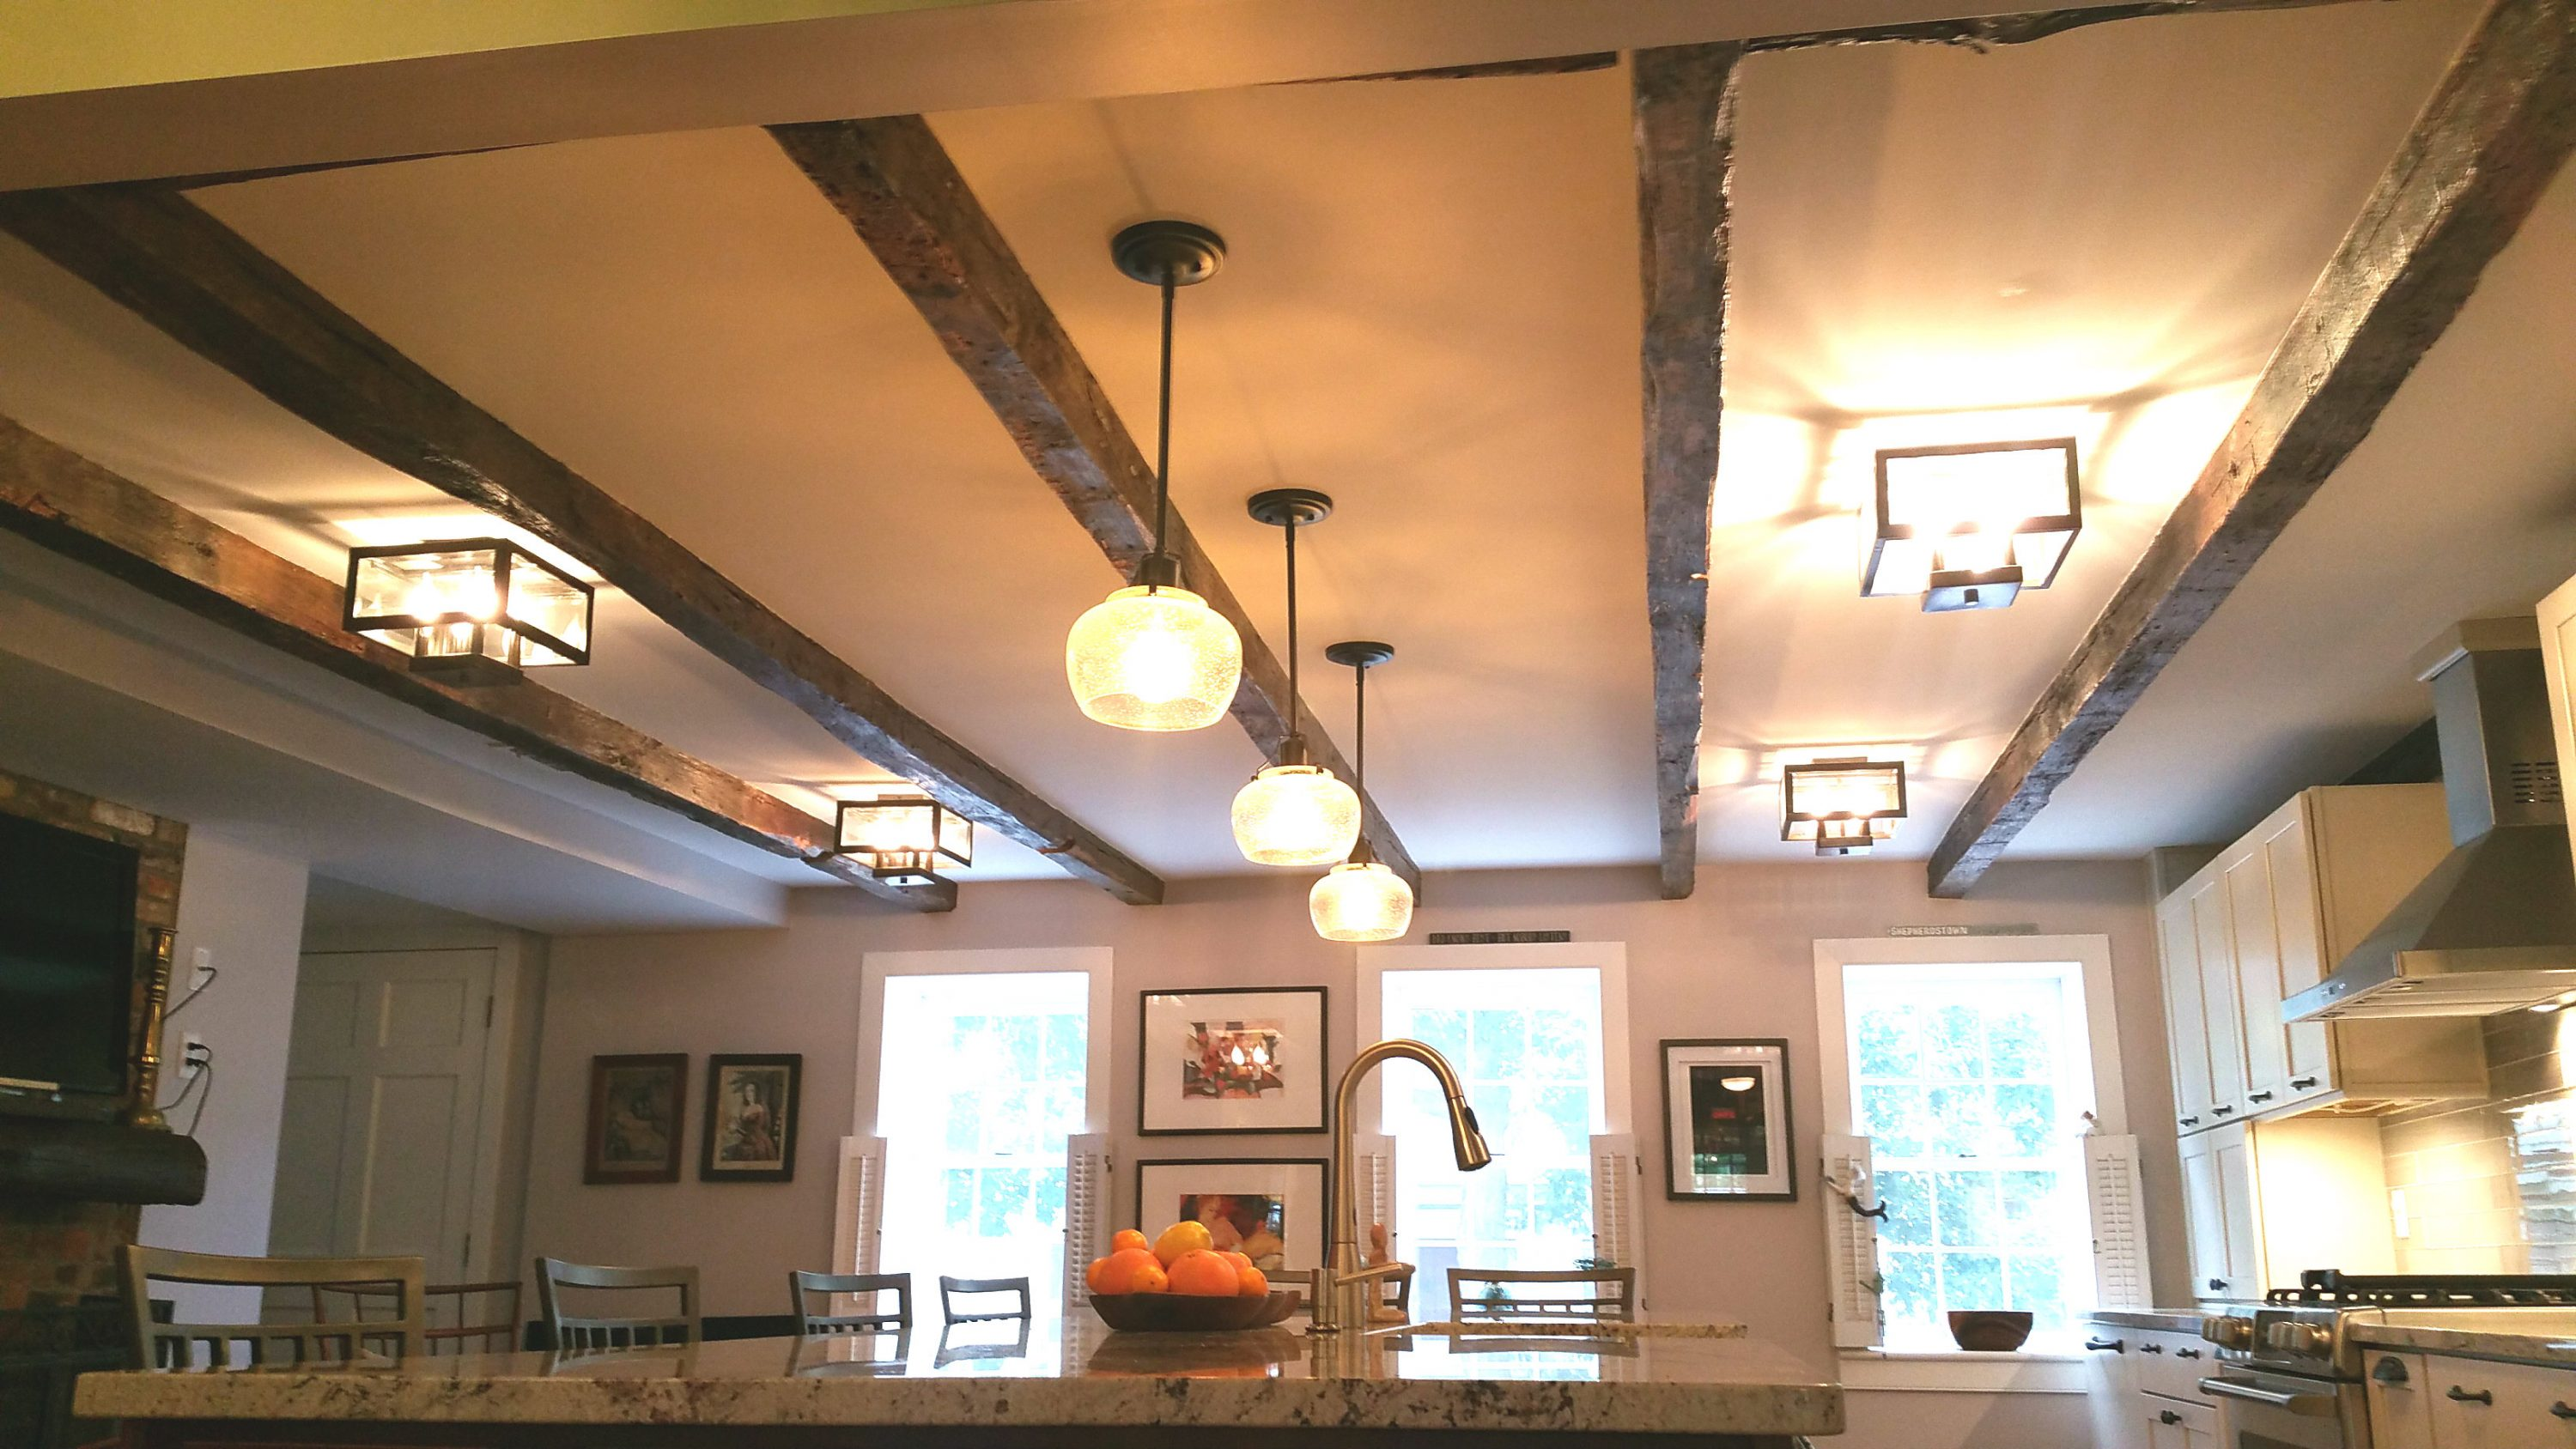 Award Winning Historic Renovation ceiling